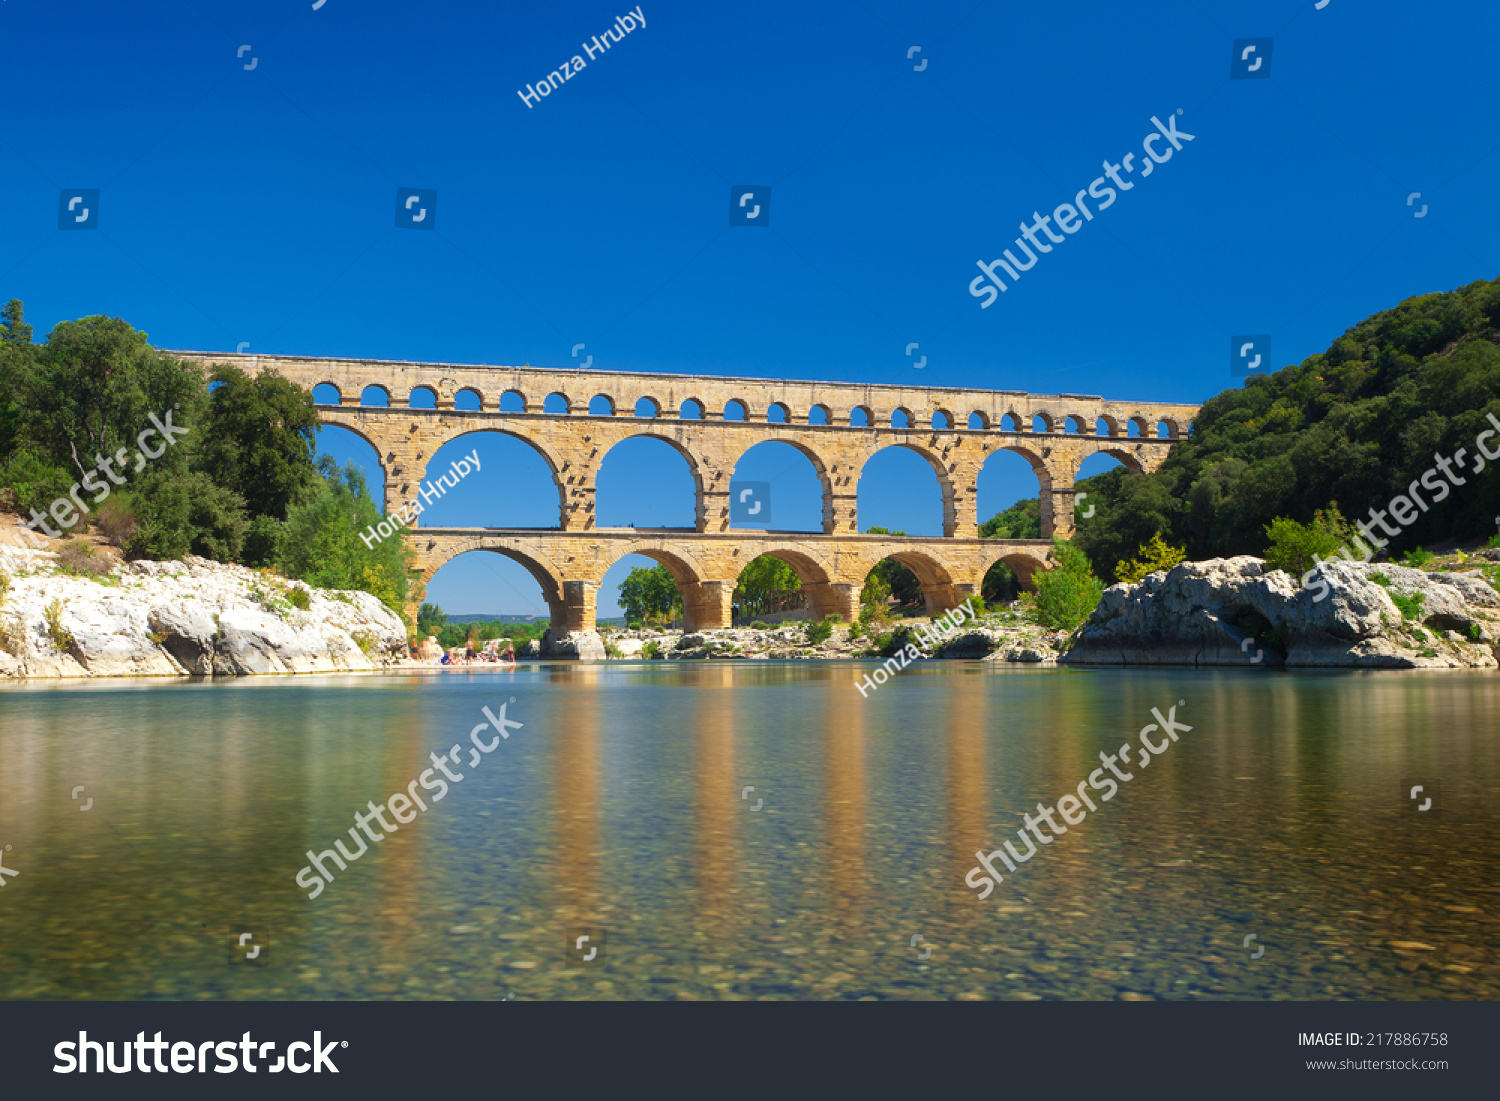 Pont du gard old roman aqueduct stock photo 217886758 for Pont du gard architecte